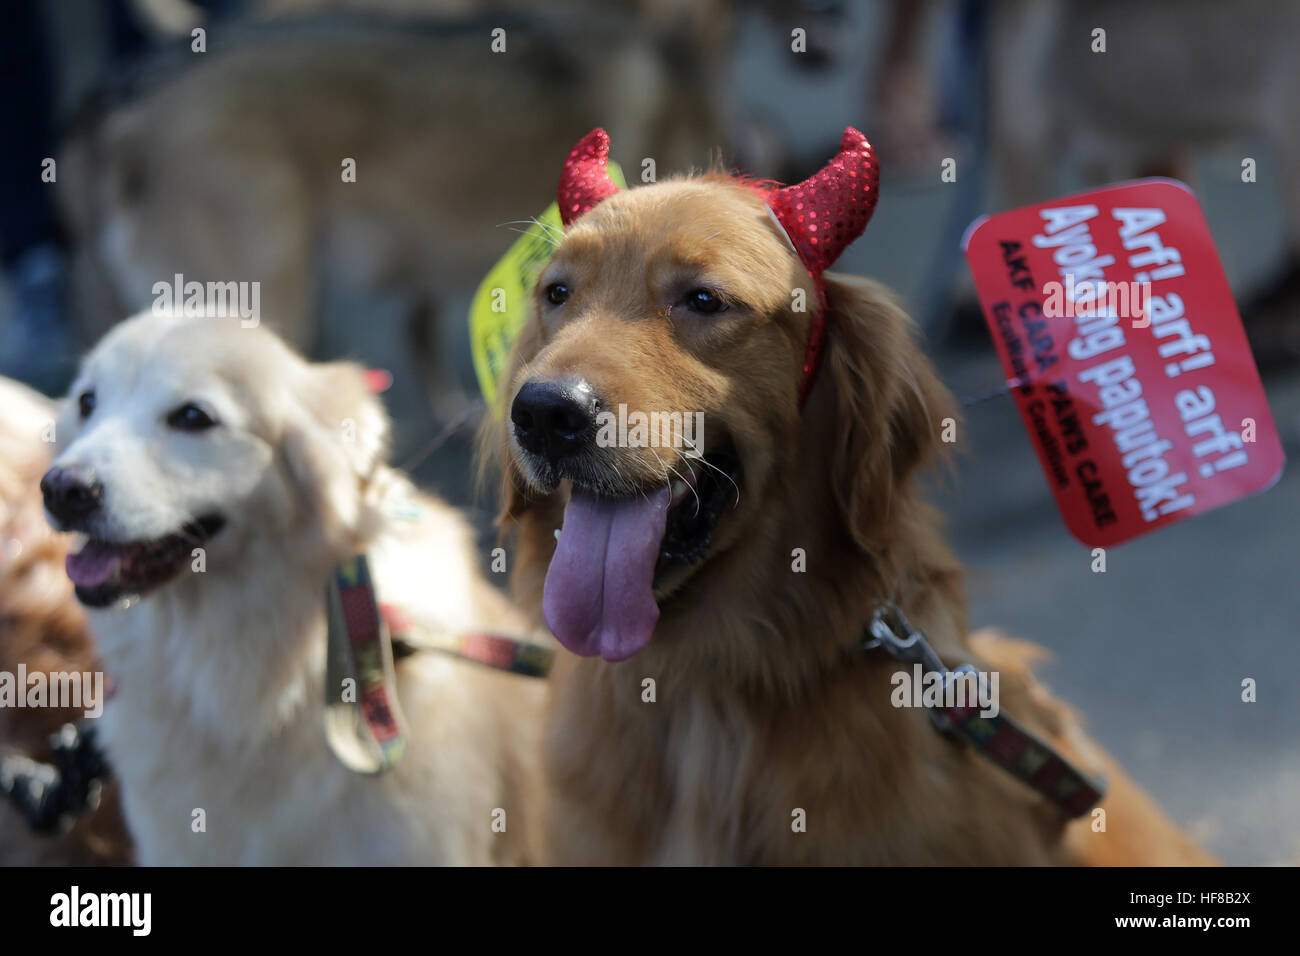 Quezon City. 28th Dec, 2016. Photo taken on Dec. 28, 2016 shows a dog with a placard on its leash during an event - Stock Image